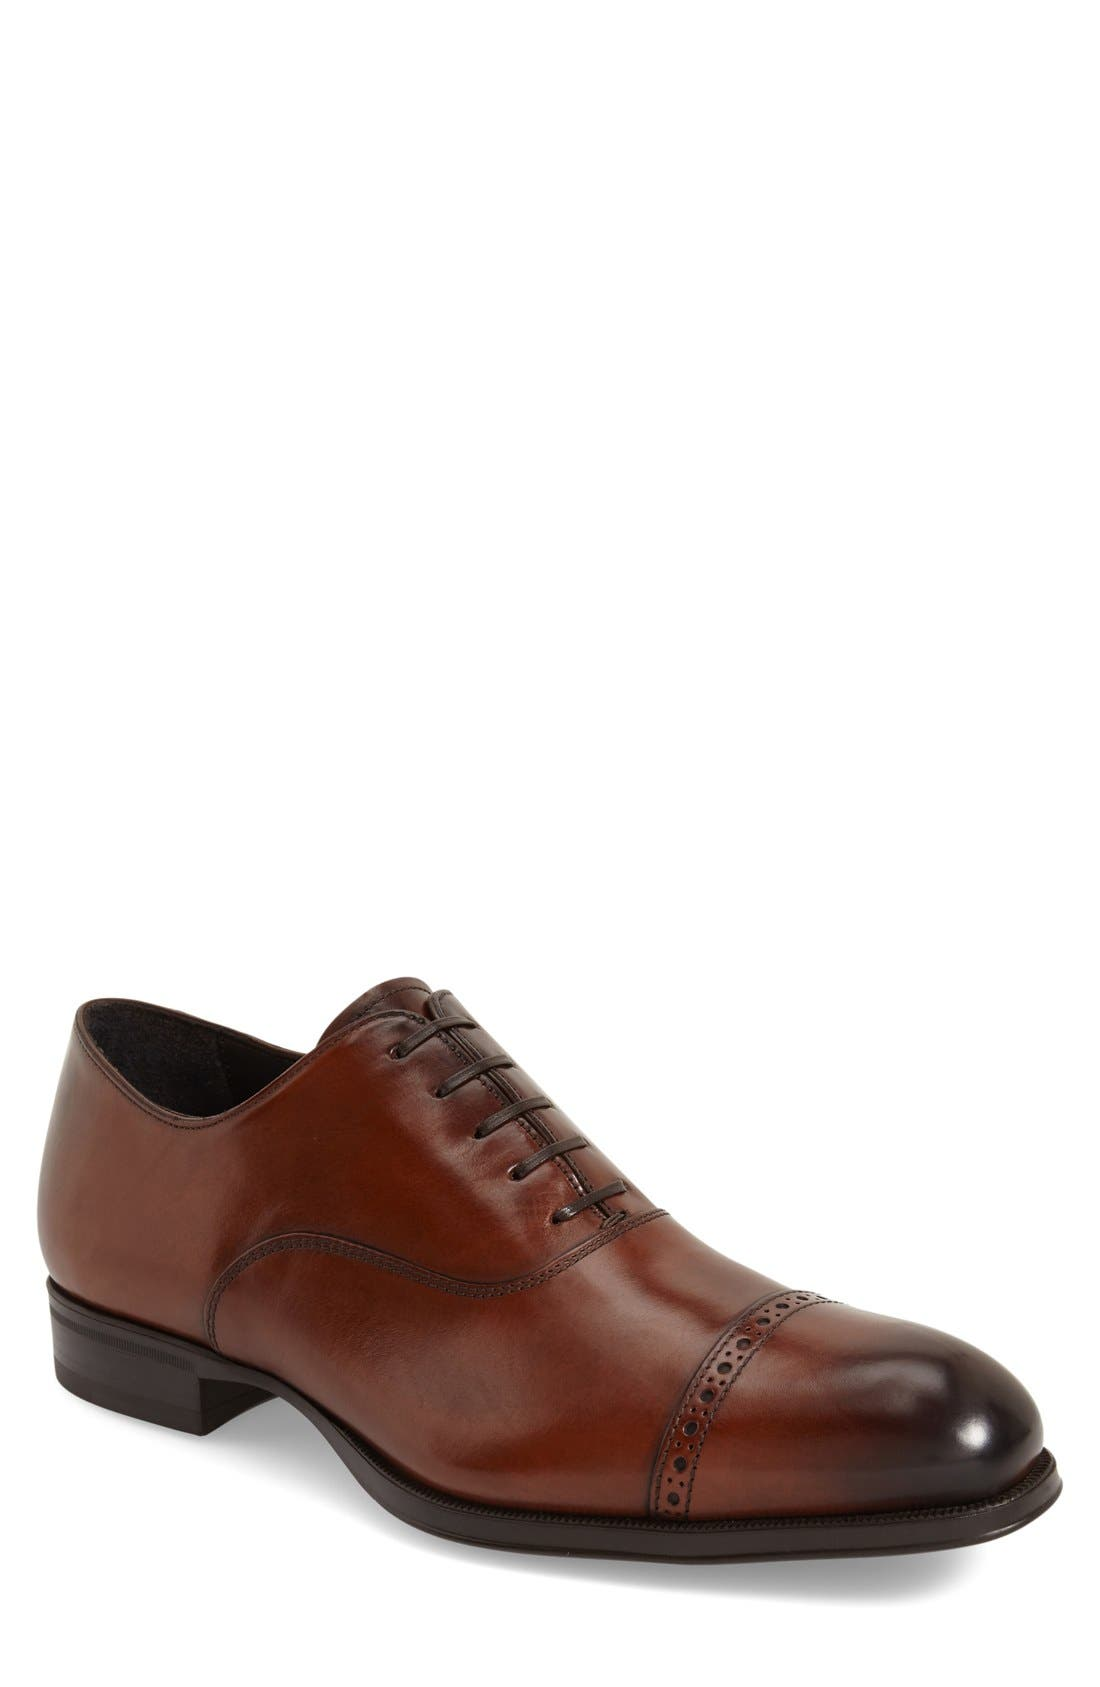 Alternate Image 1 Selected - To Boot New York 'Derek' Cap Toe Oxford (Men)